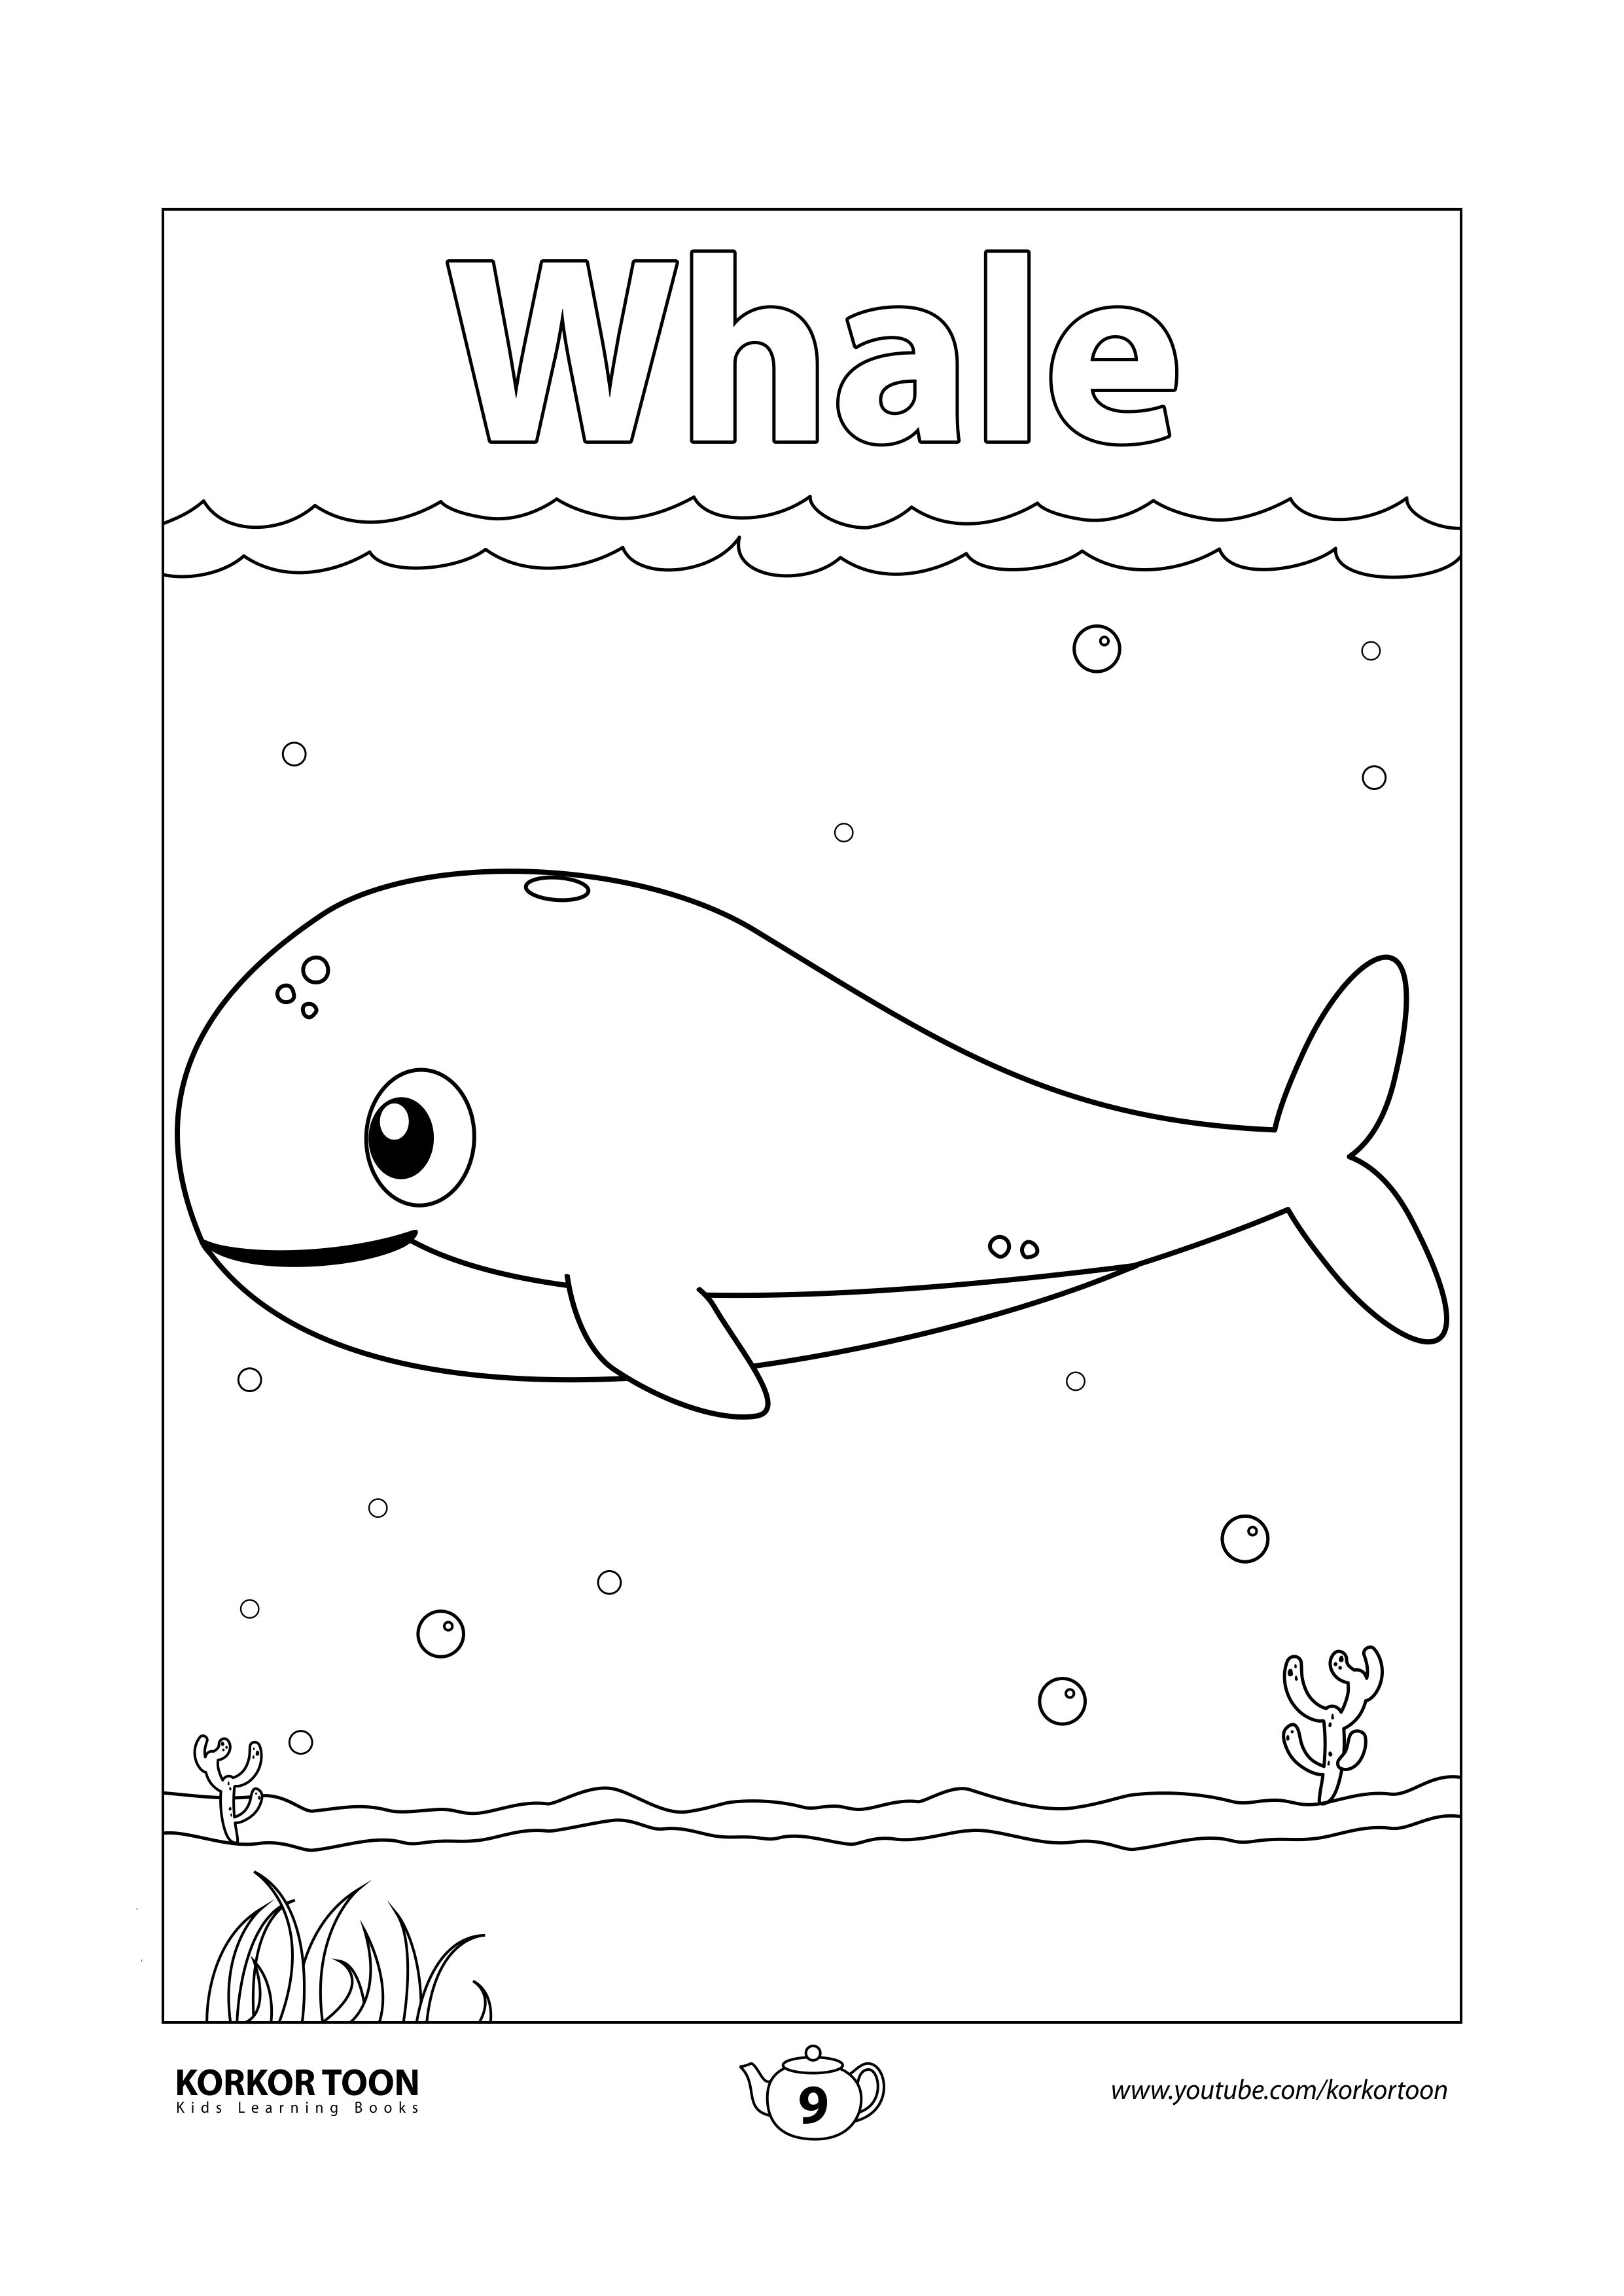 Free Printable High Quality Coloring Pages For Kids Download